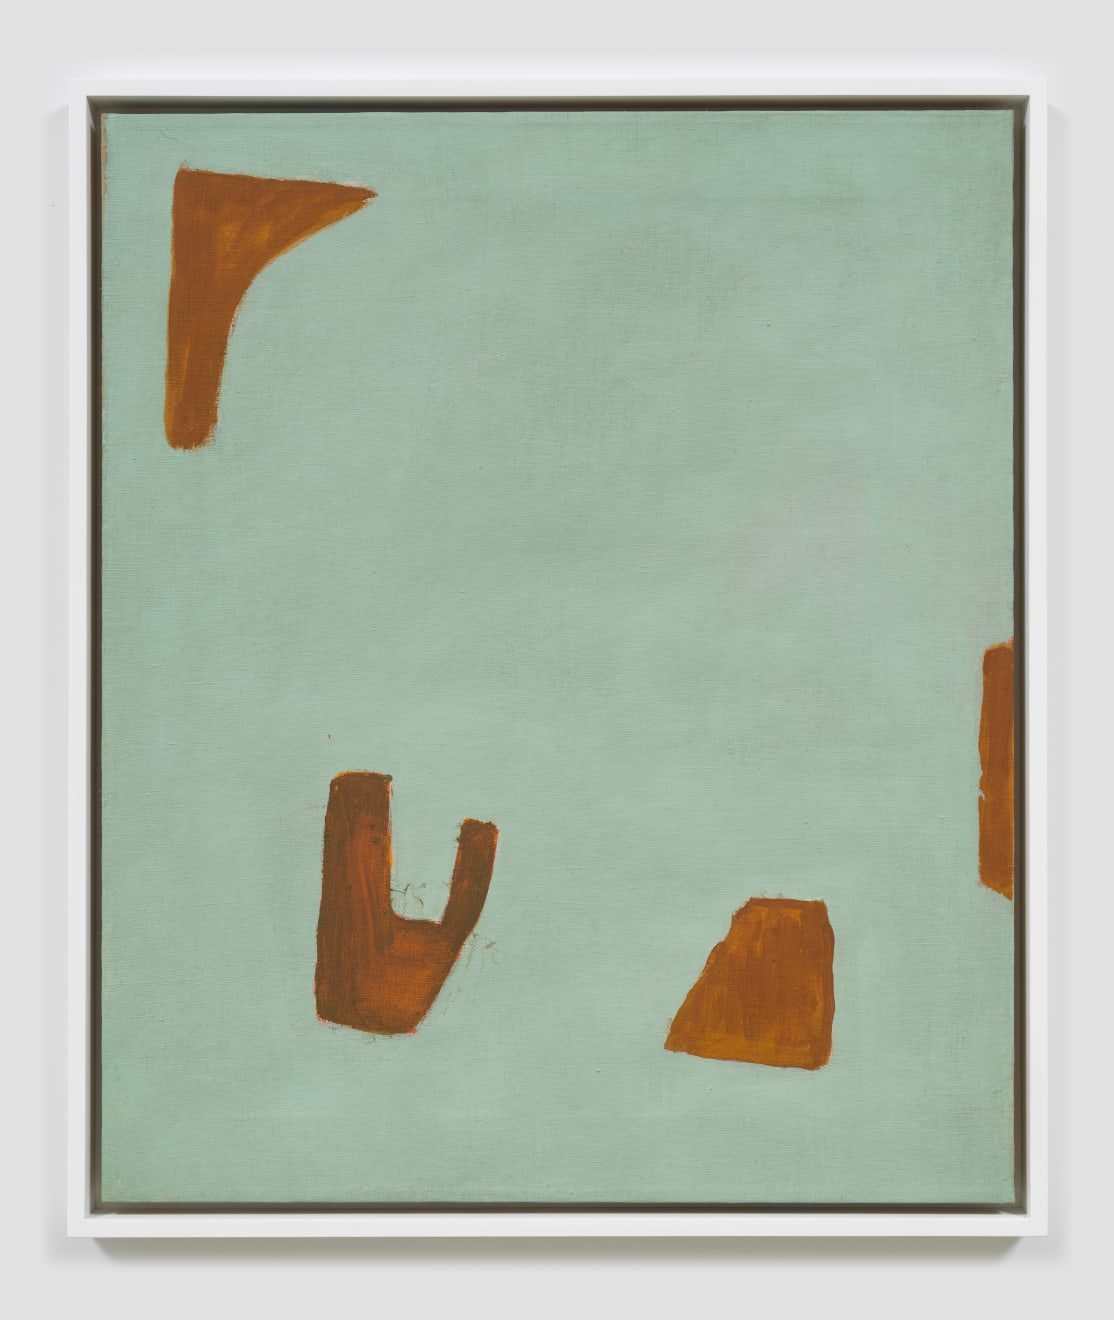 Betty Parsons Early Light, 1965 Acrylic on canvas 30.75h x 25.63w in (78.11h x 65.09w cm)